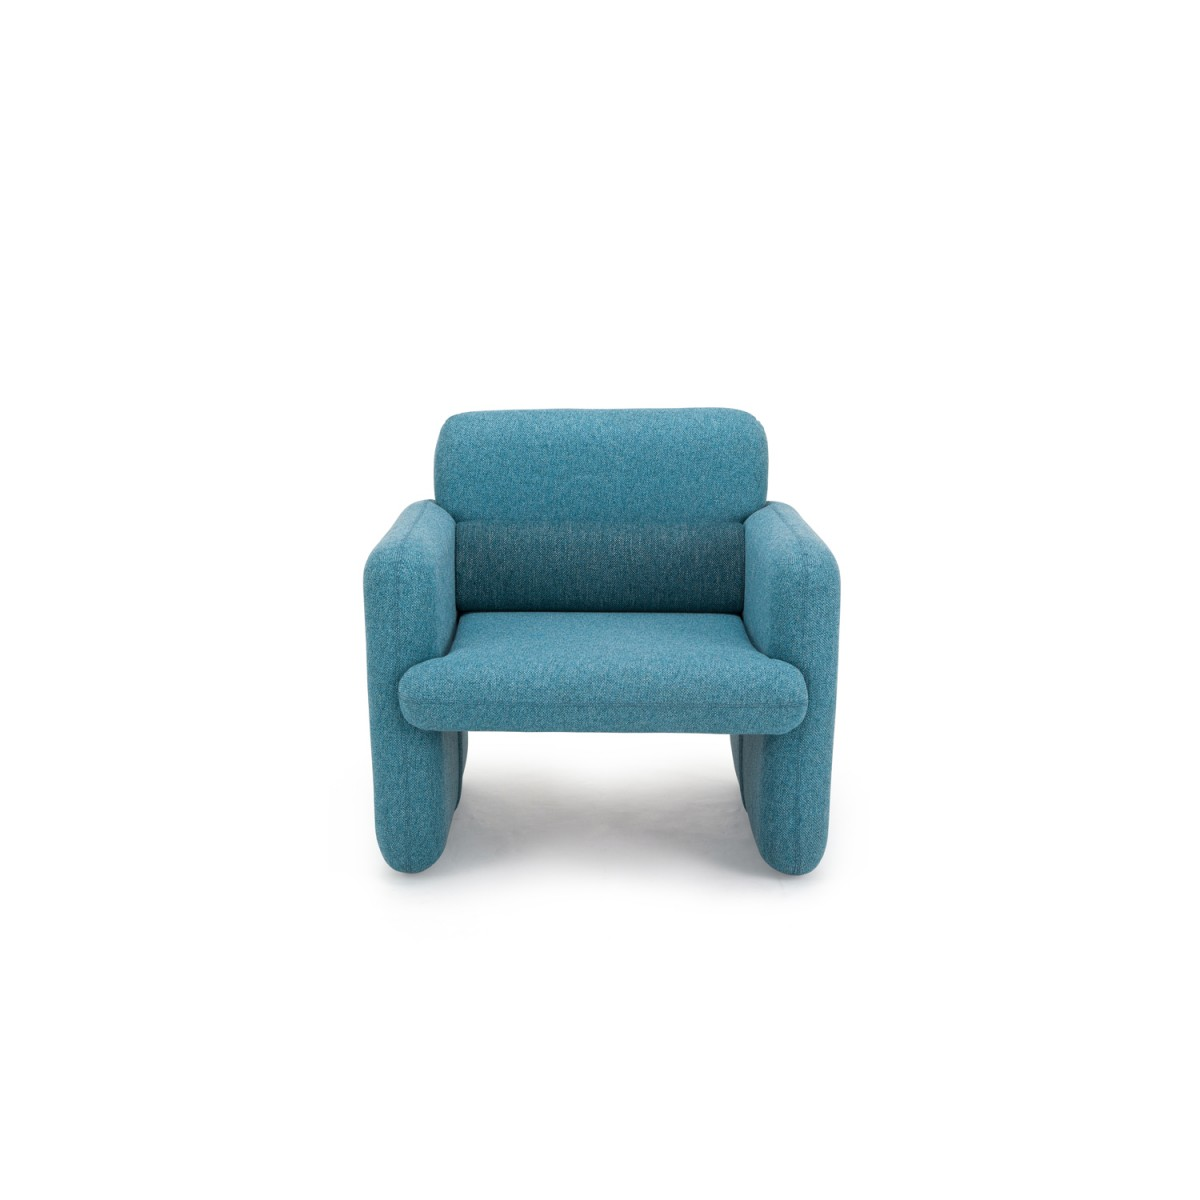 Ross Series Blue Woven Fabric Upholstered Modern Accent